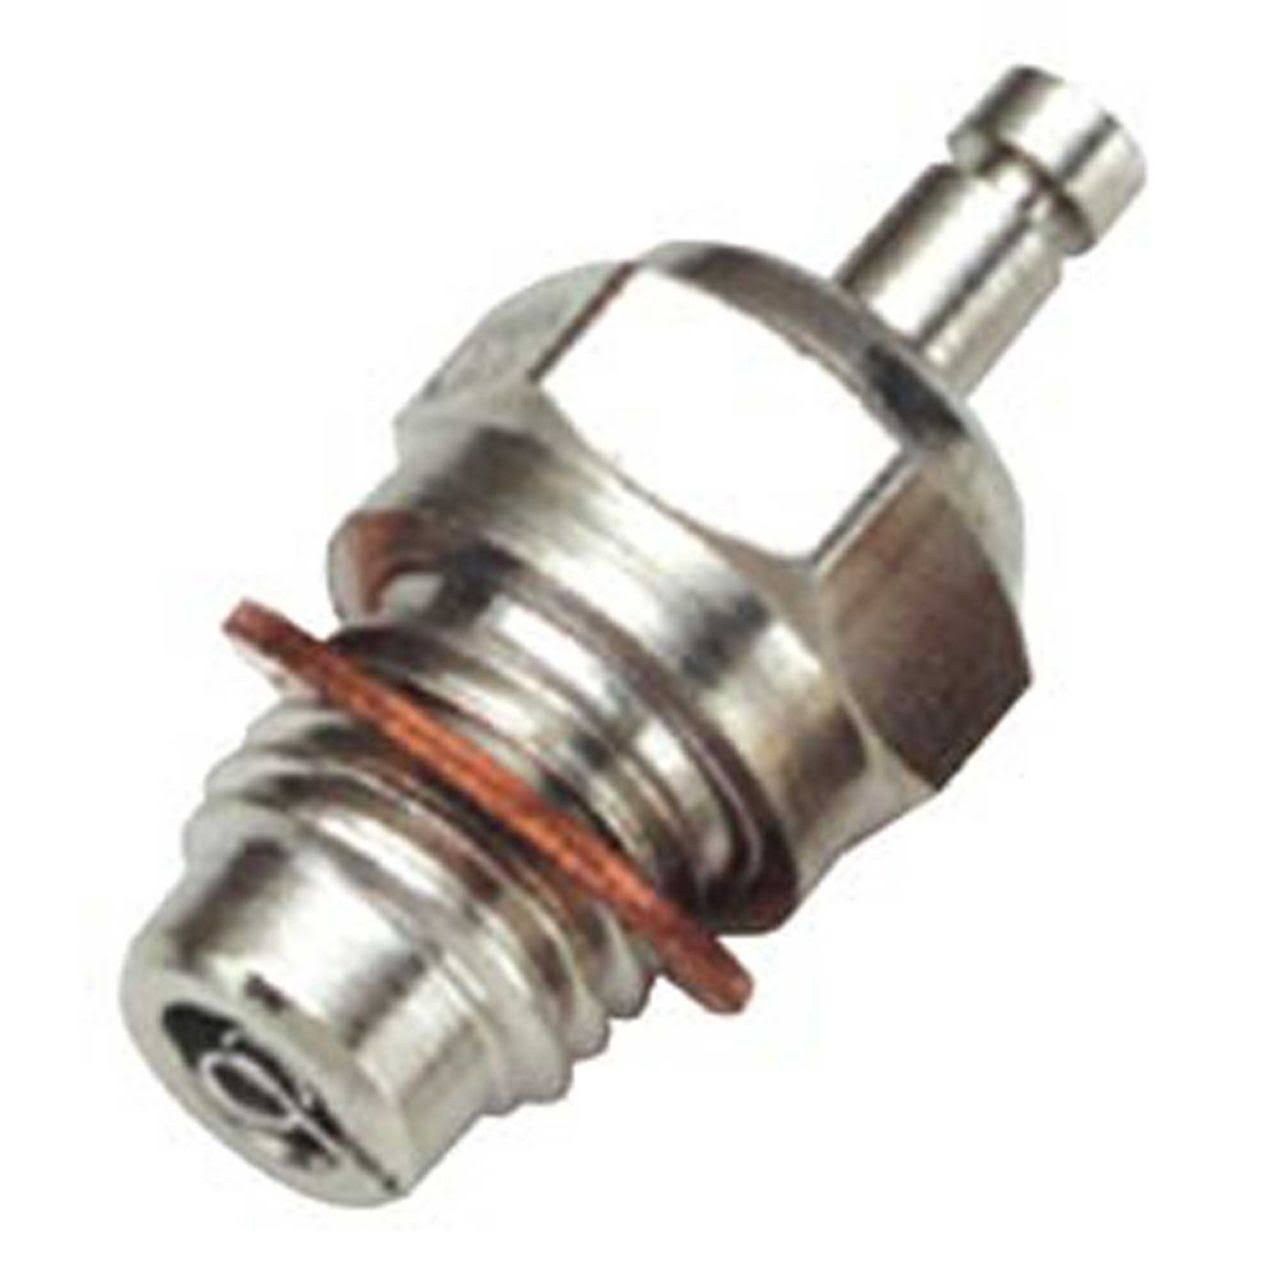 Saito SAIP50120B Engines Glow Plug